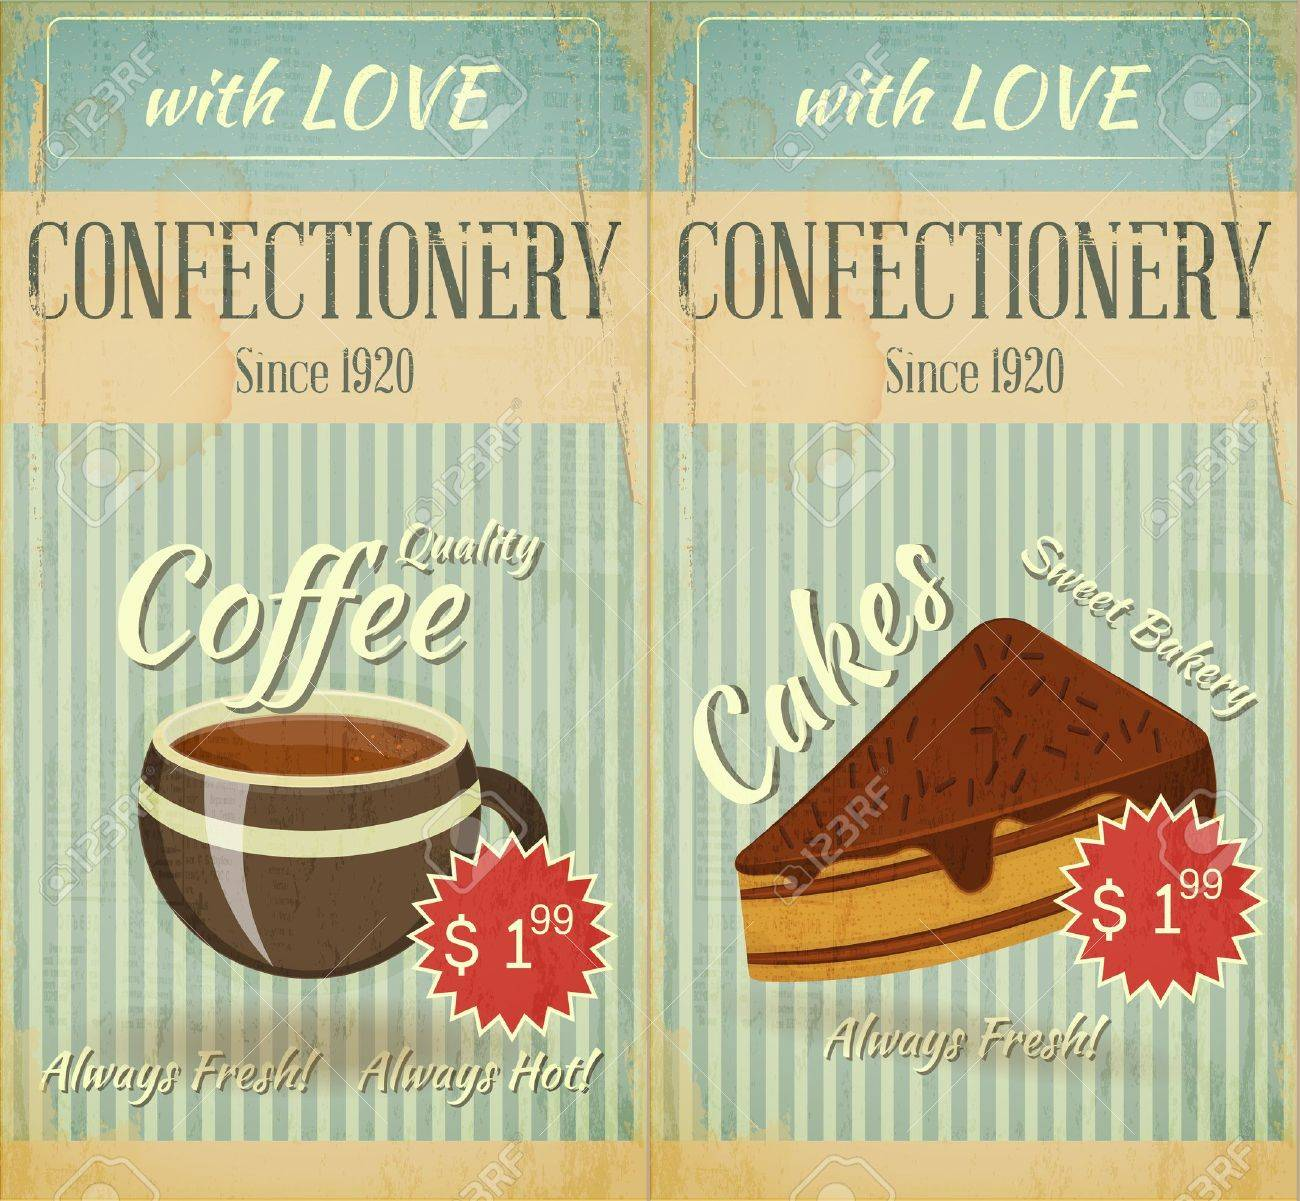 Vintage two Cards Cafe confectionery dessert Menu in Retro style - illustration - 17540972